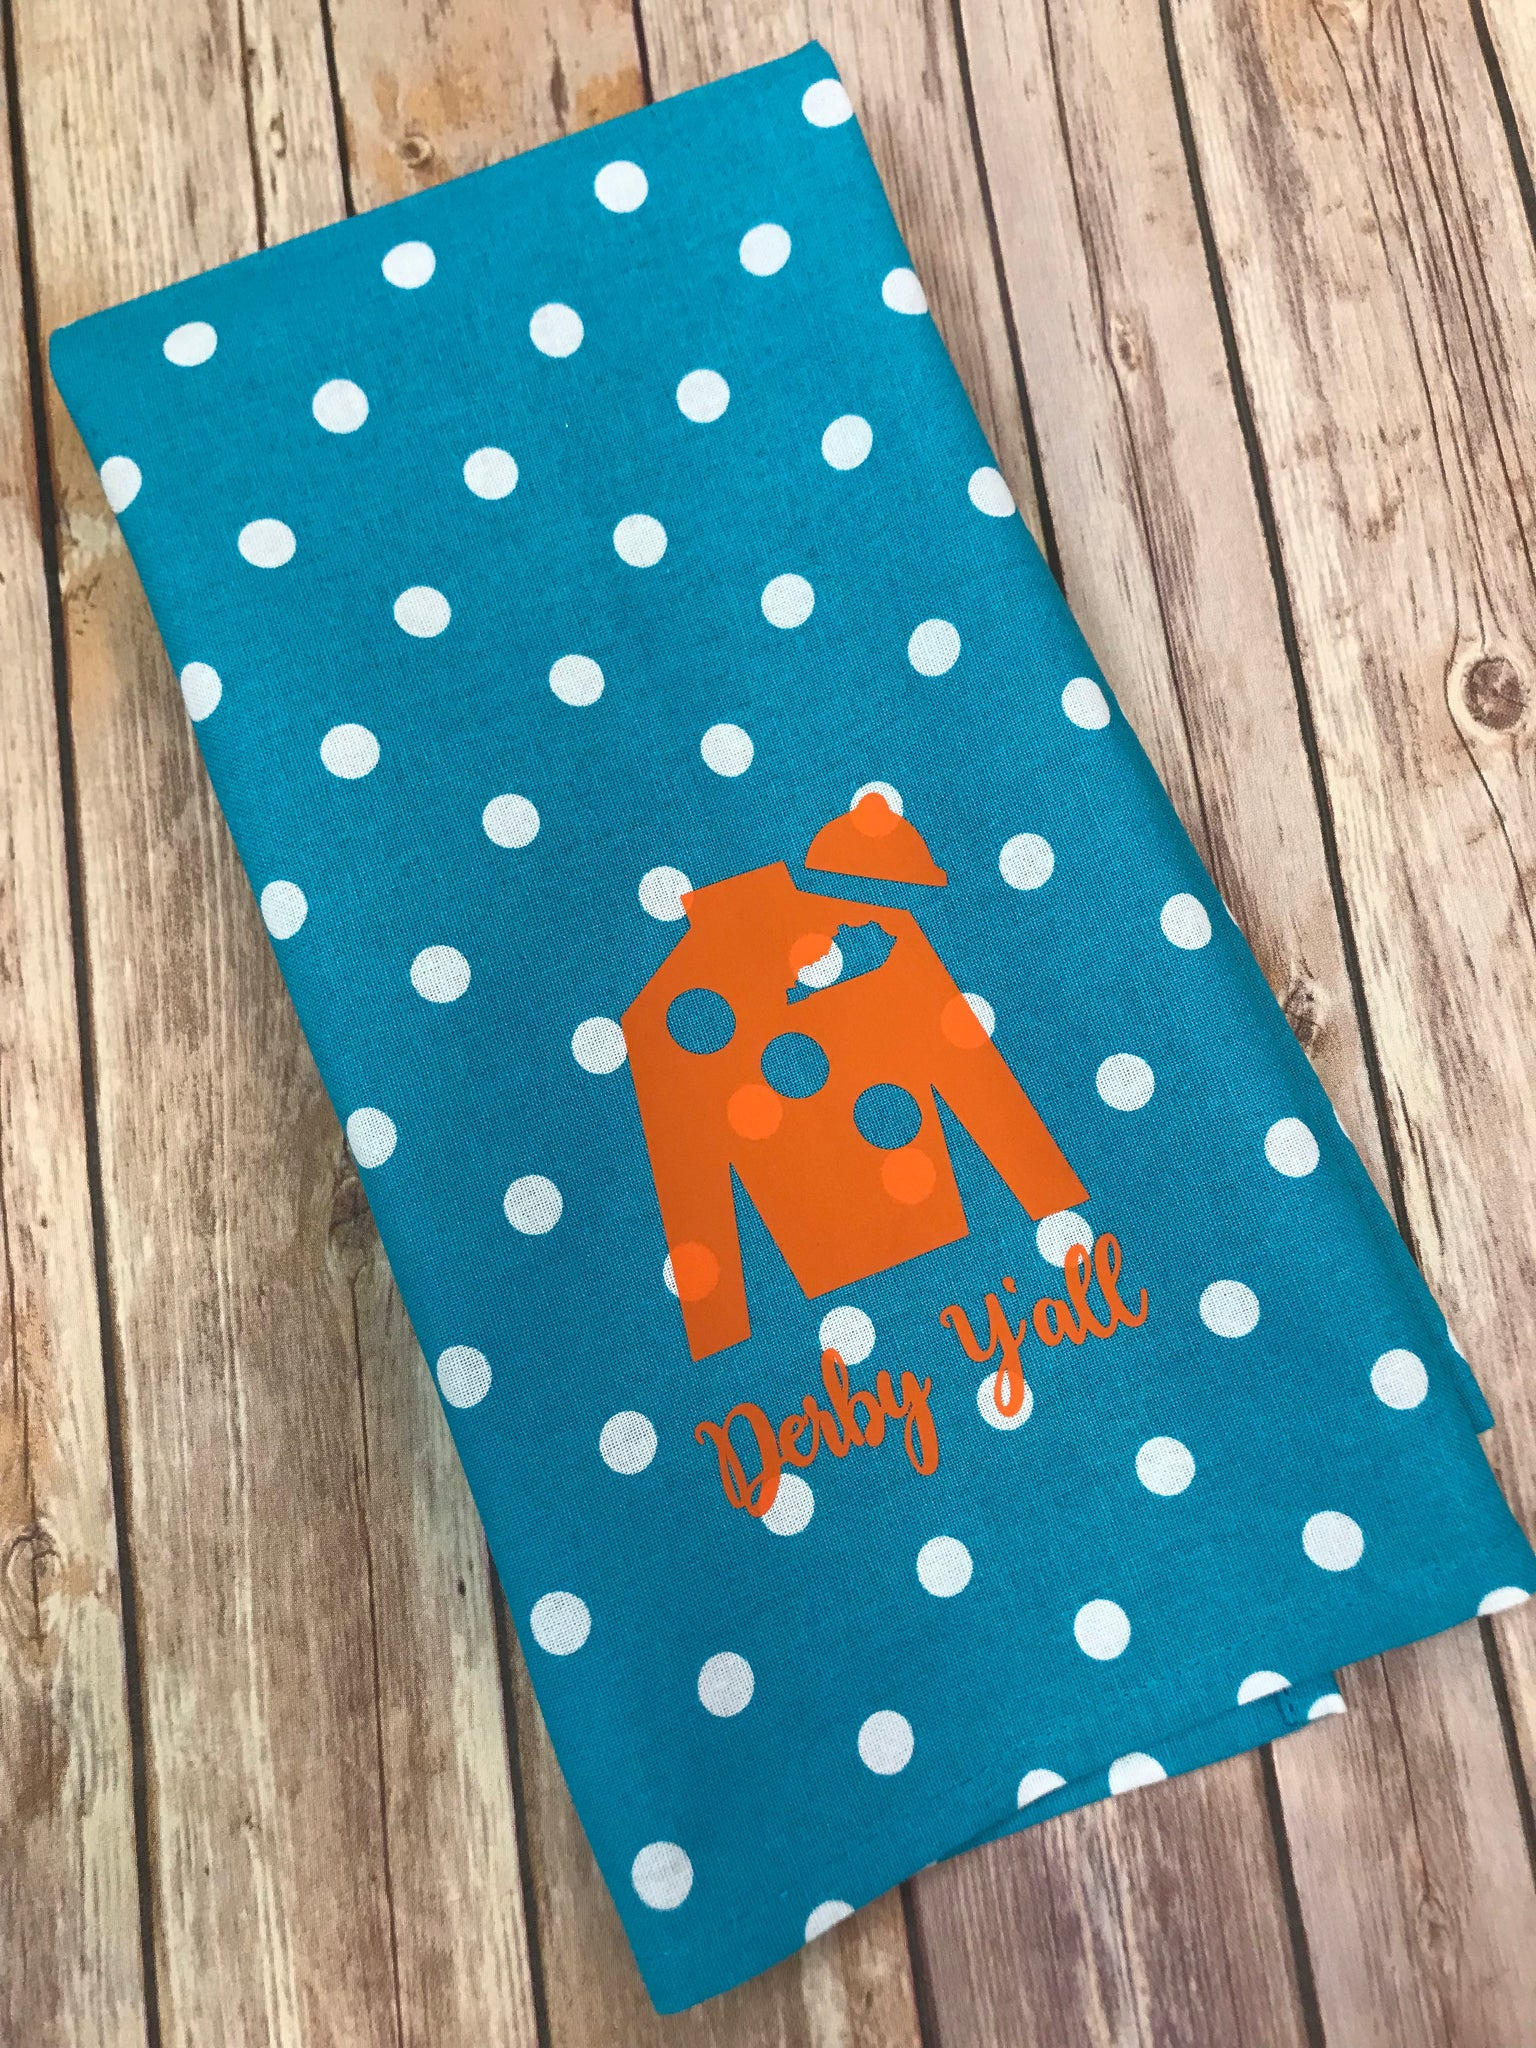 Derby Y'all Jockey Silk hand towel - polka dot aqua with orange jockey